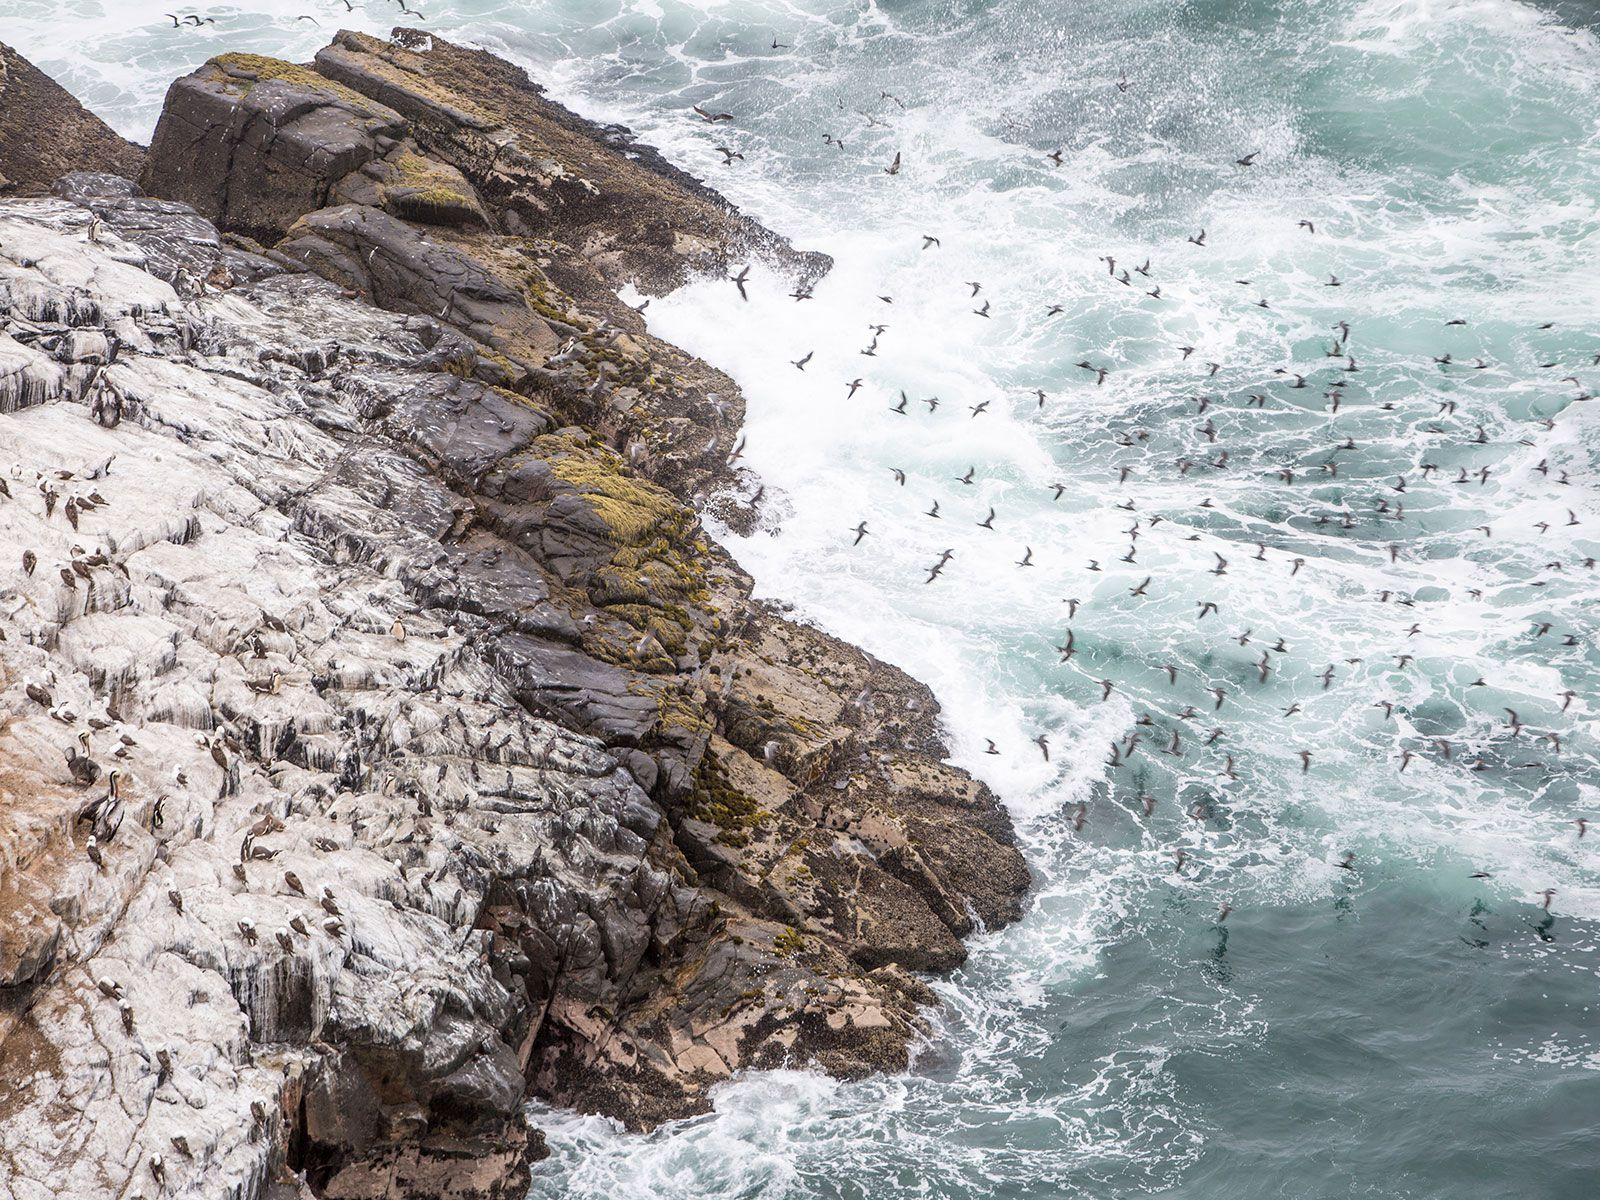 Ancient South American Civilizations Bloomed in the Desert Thanks to Seabird Poop